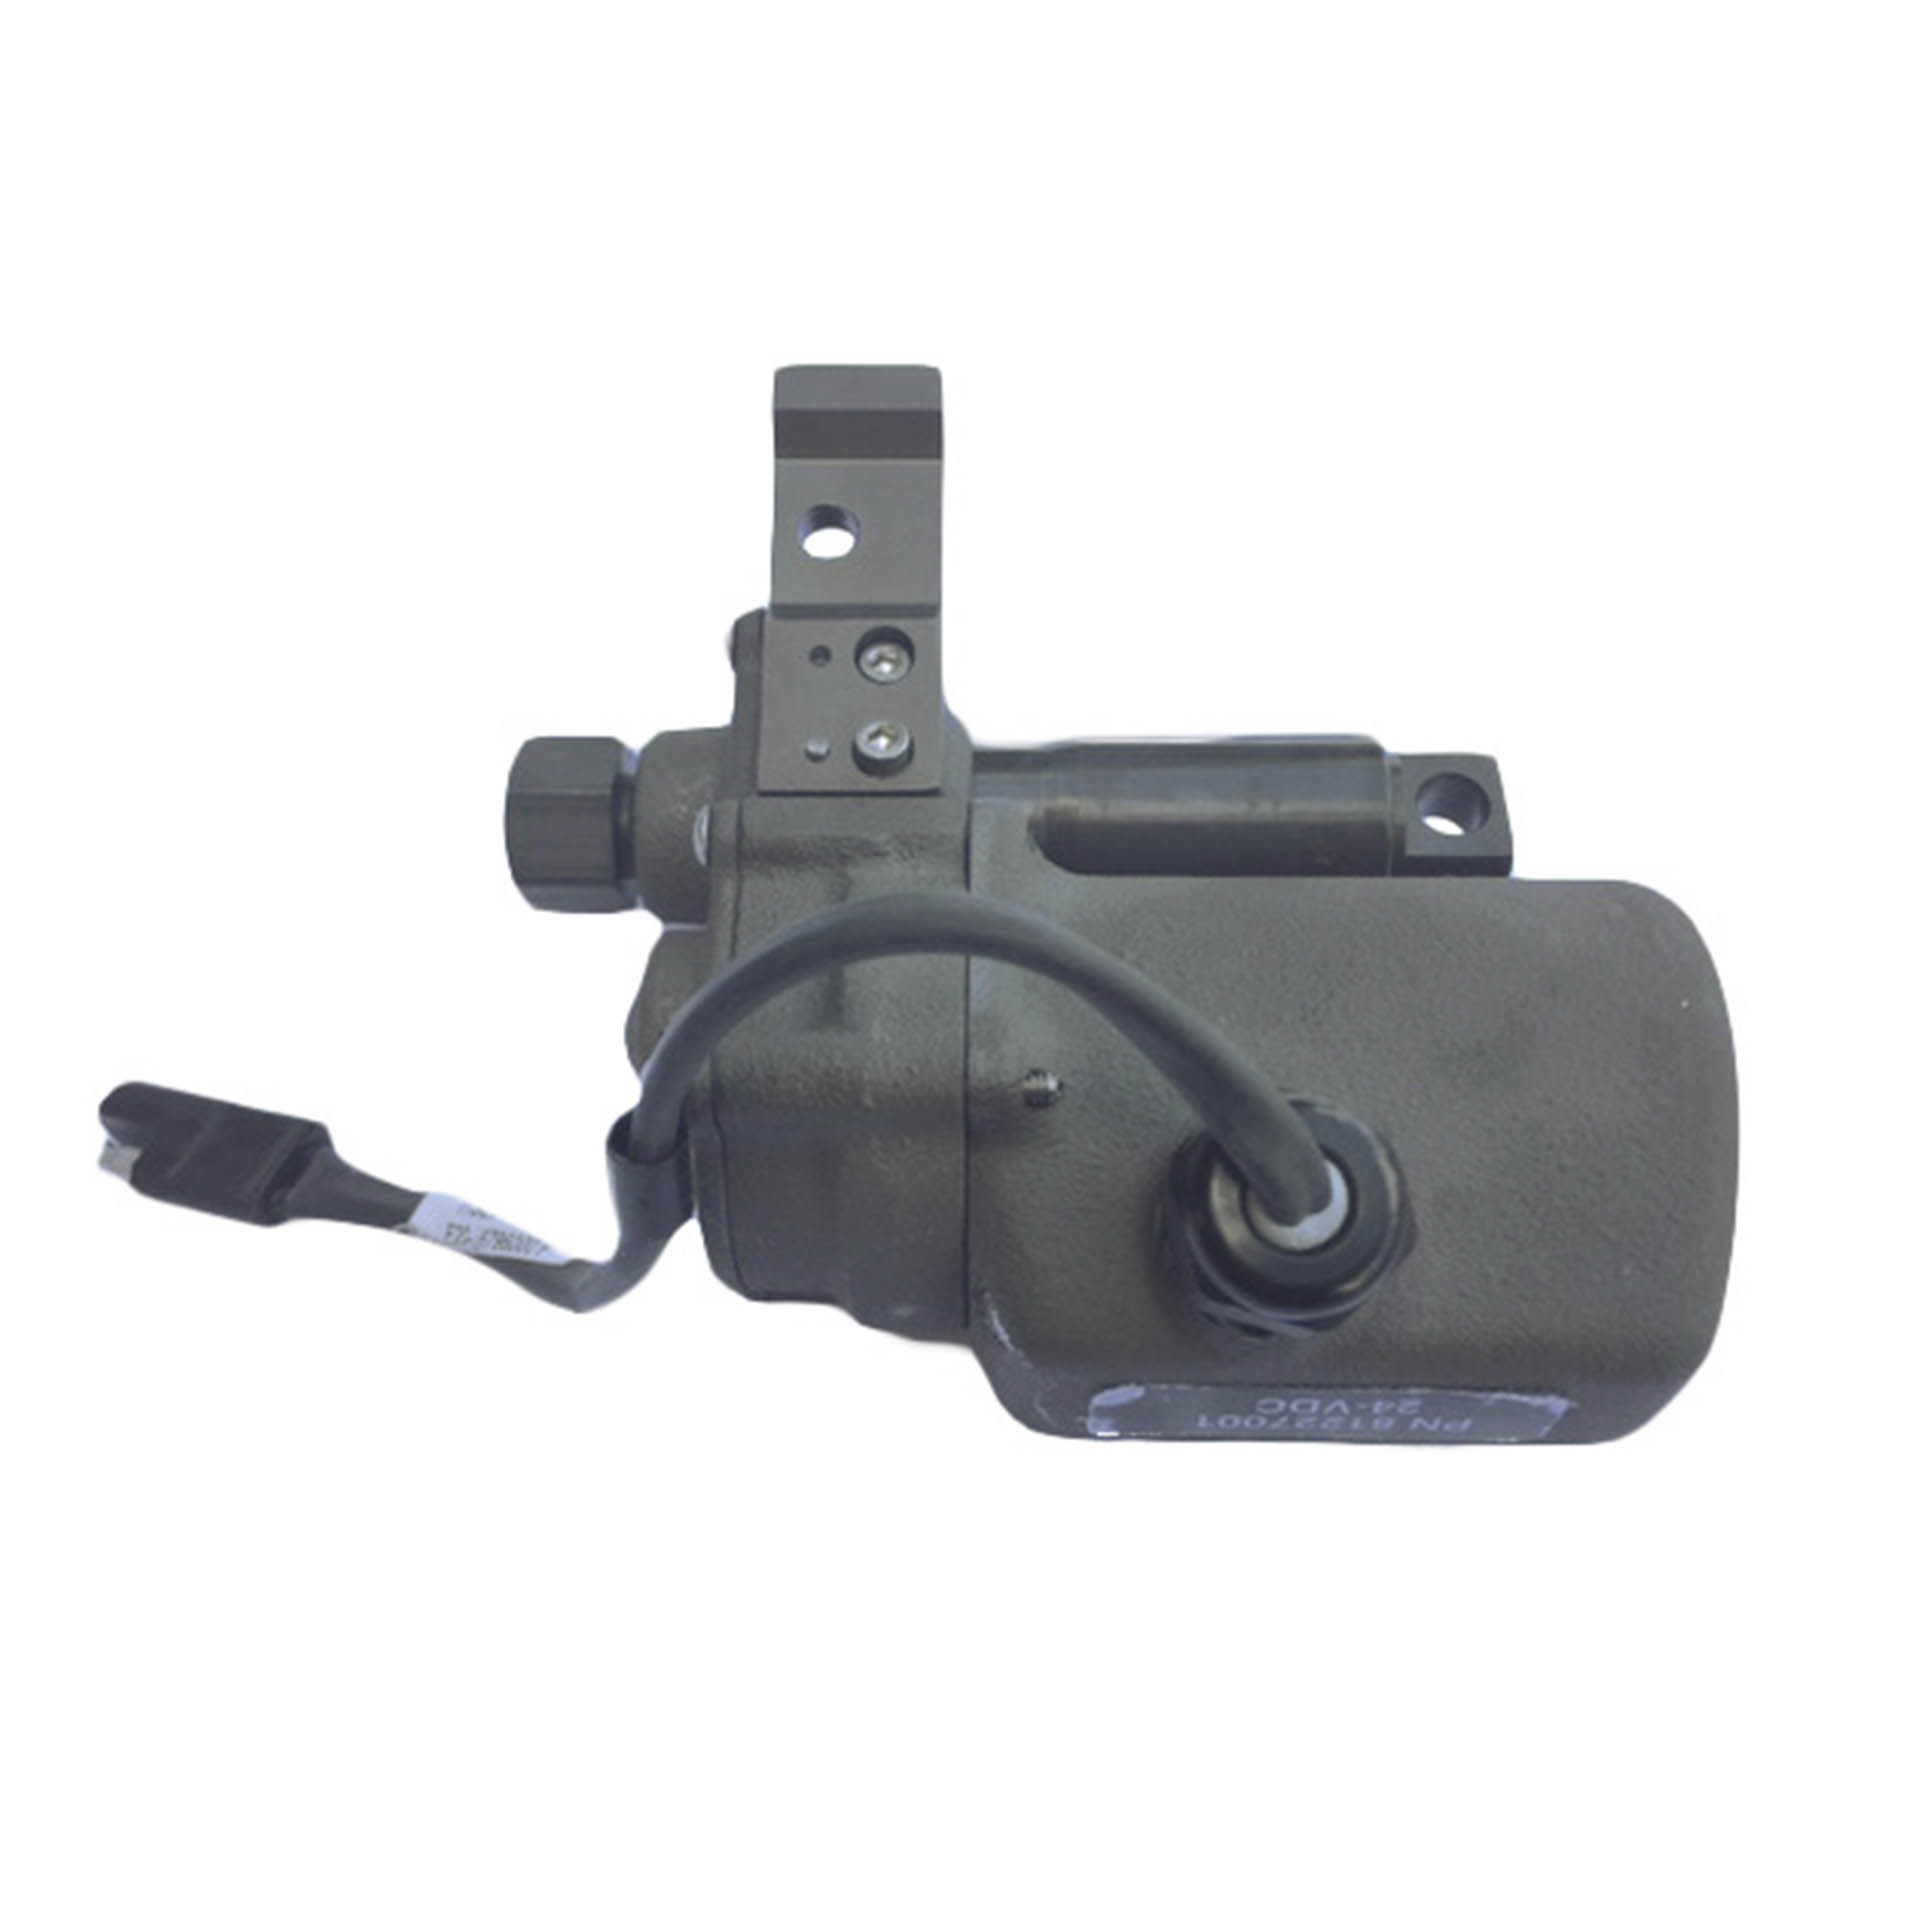 Buy Elkhart Electric Operated Water Cannon Online At Access Truck Parts Sidewinder Joystick Wiring Diagram Nozzle Actuator